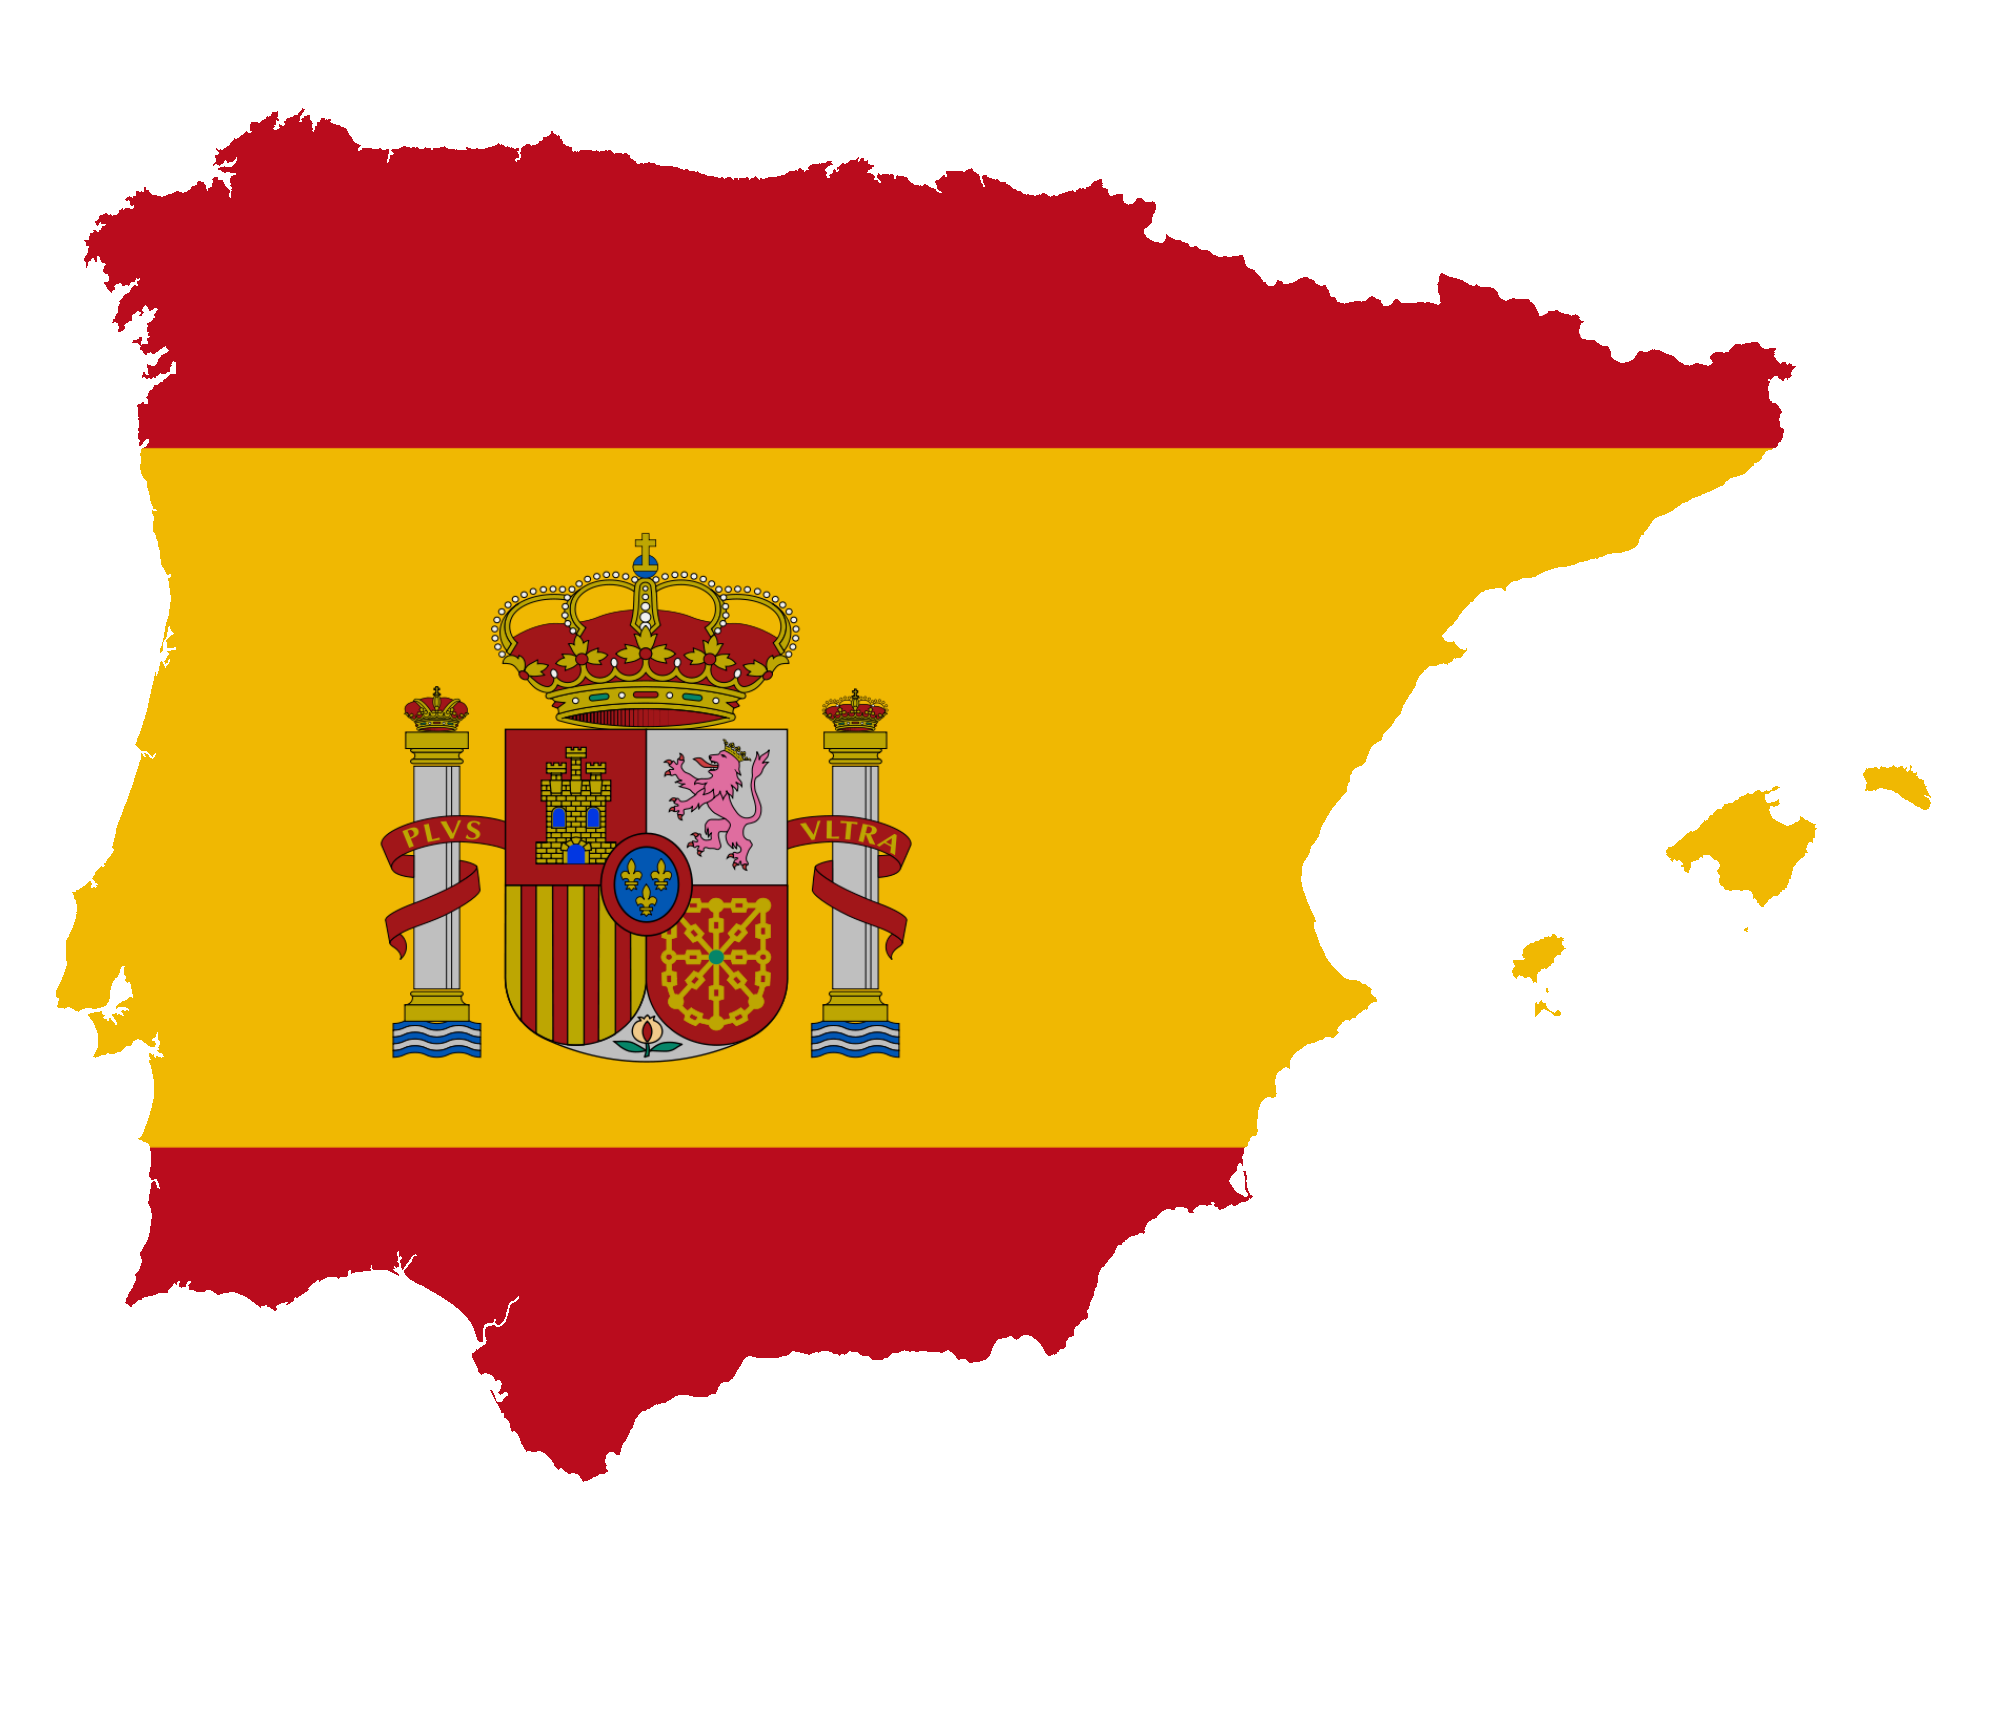 File:Flag map of Greater Spain.png   Wikimedia Commons